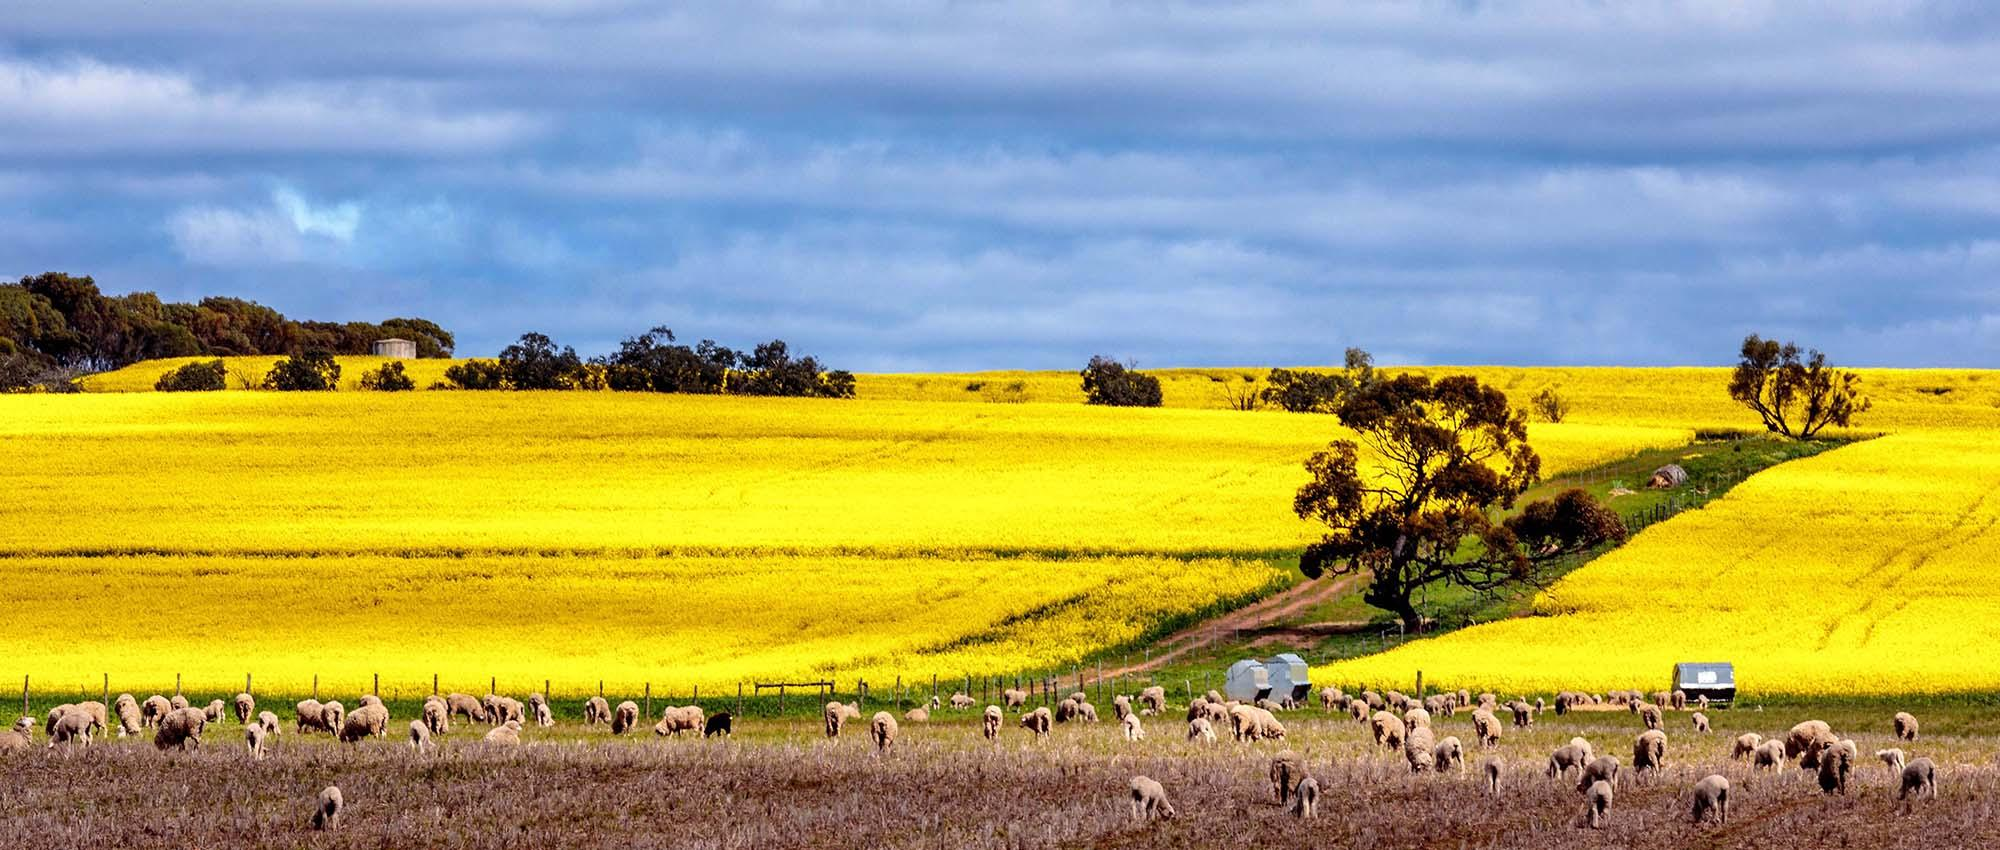 Canola in Full Bloom